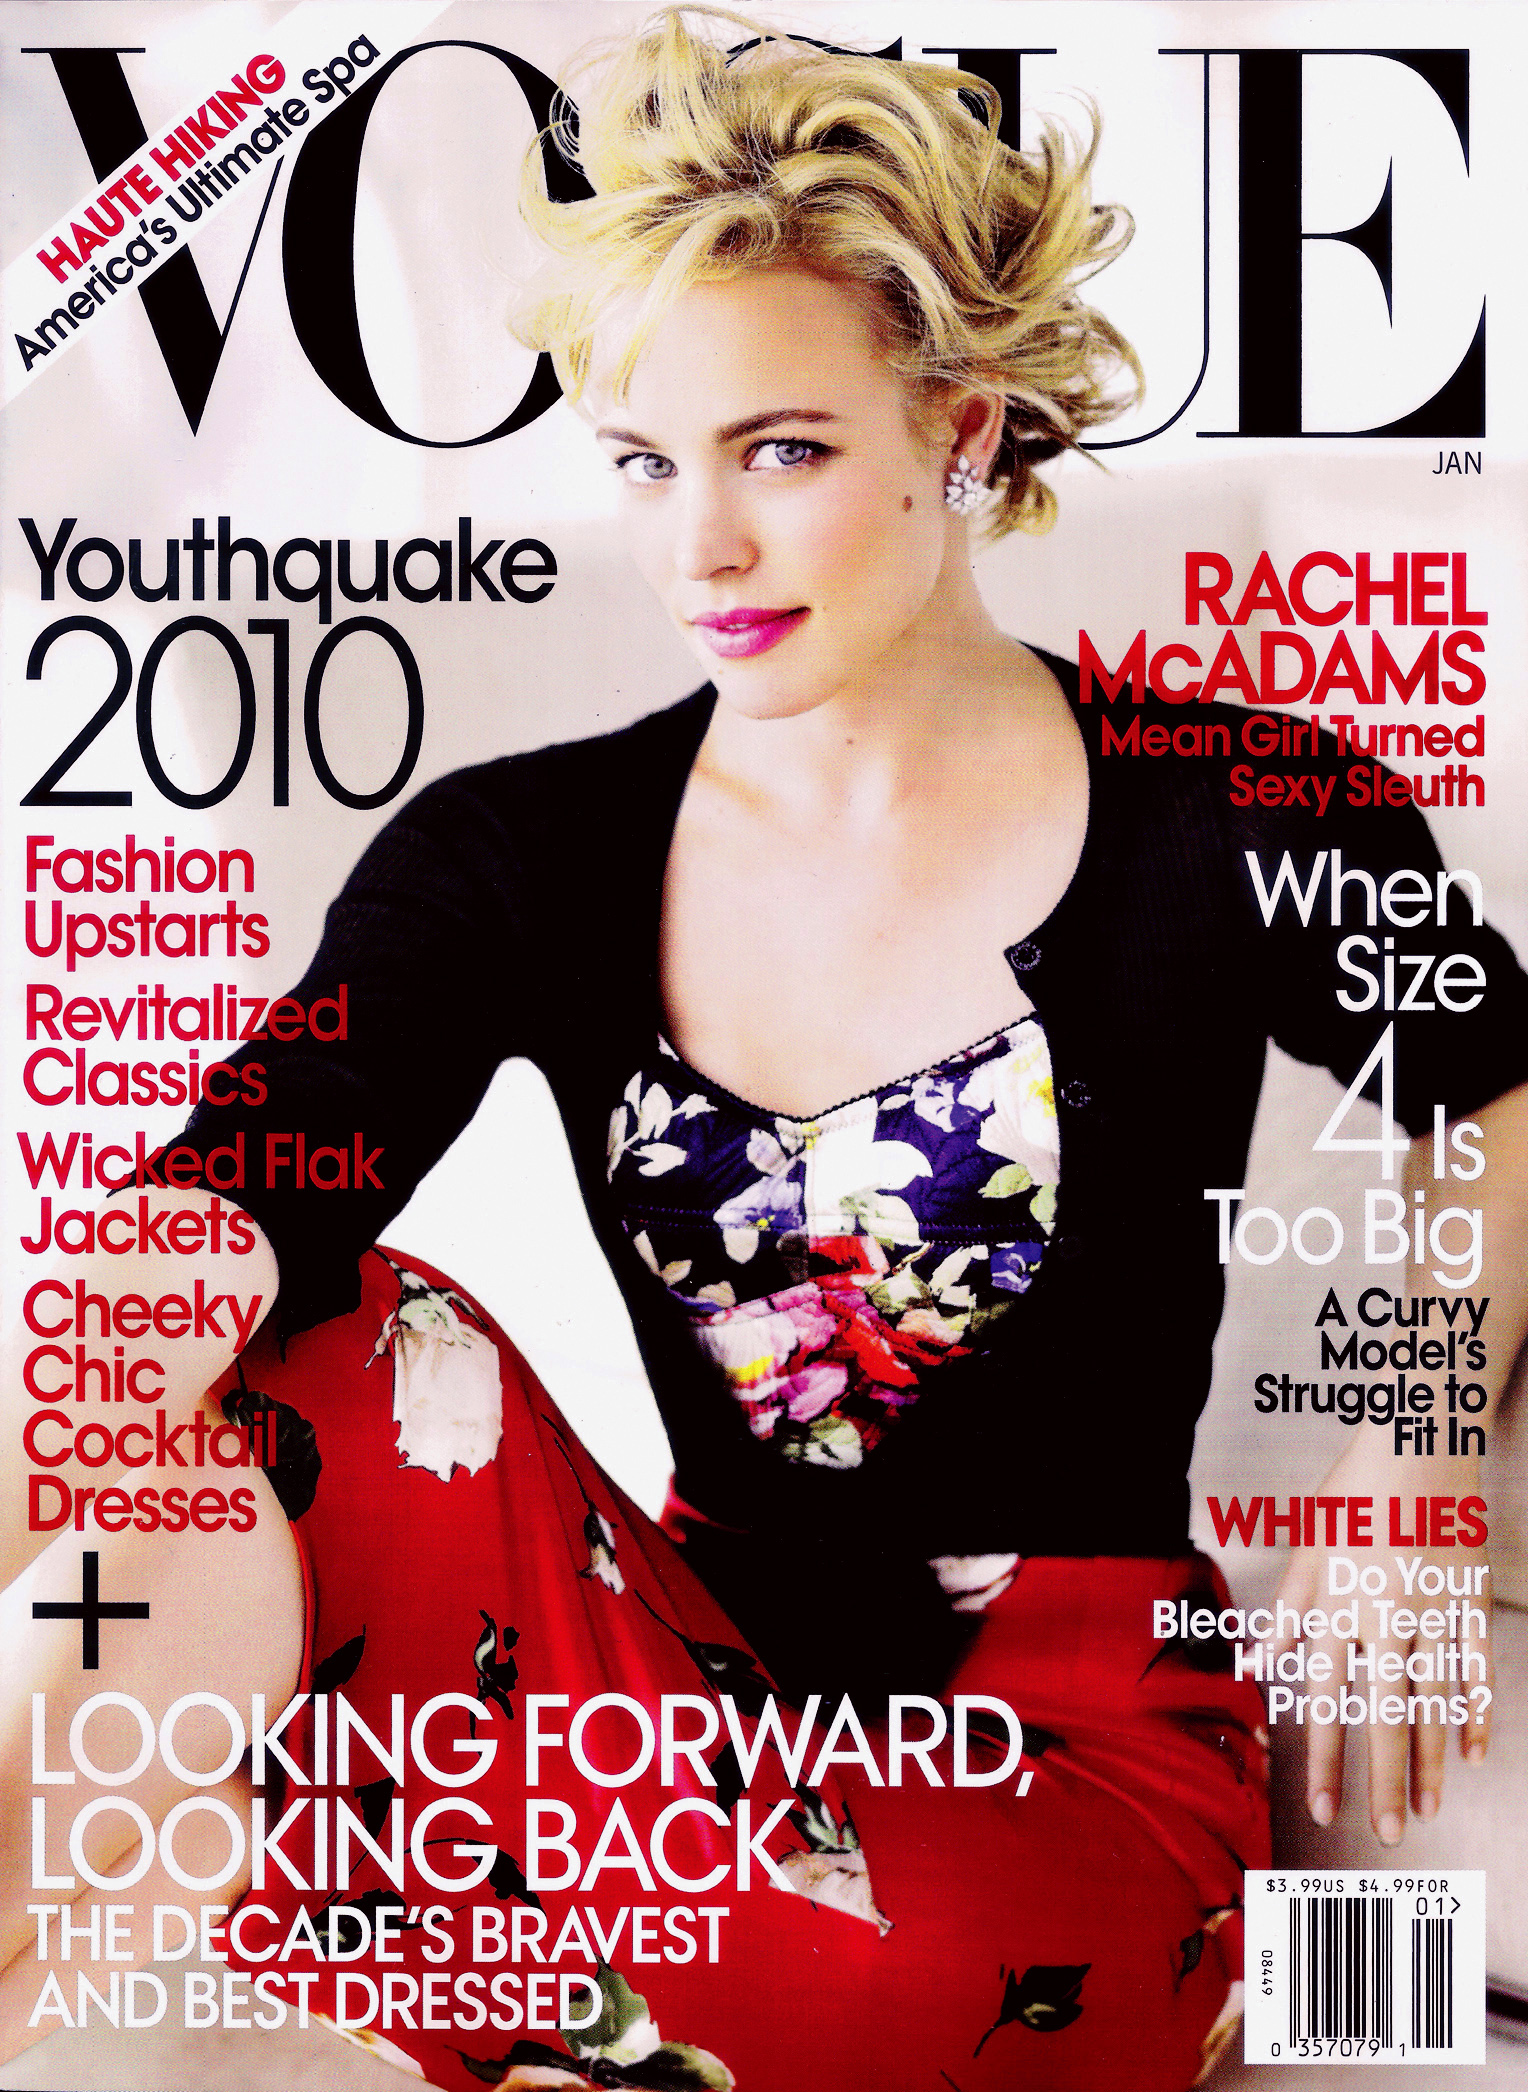 rachel mcadams for us vogue january 2010 art8amby 39 s blog